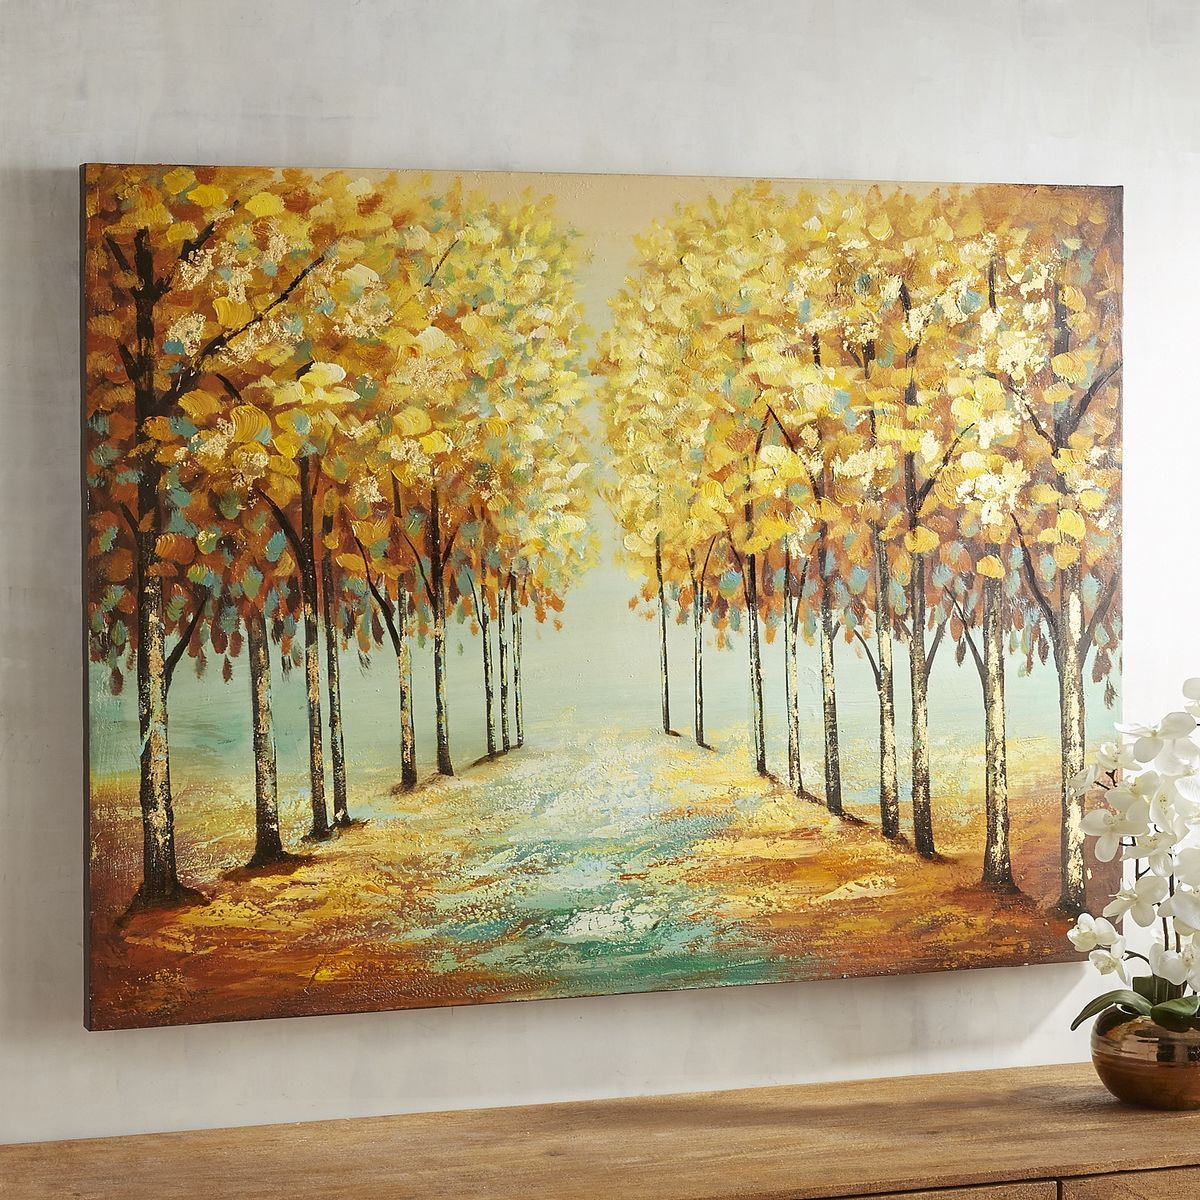 Harvest nature brown tree art pier 1 imports nature